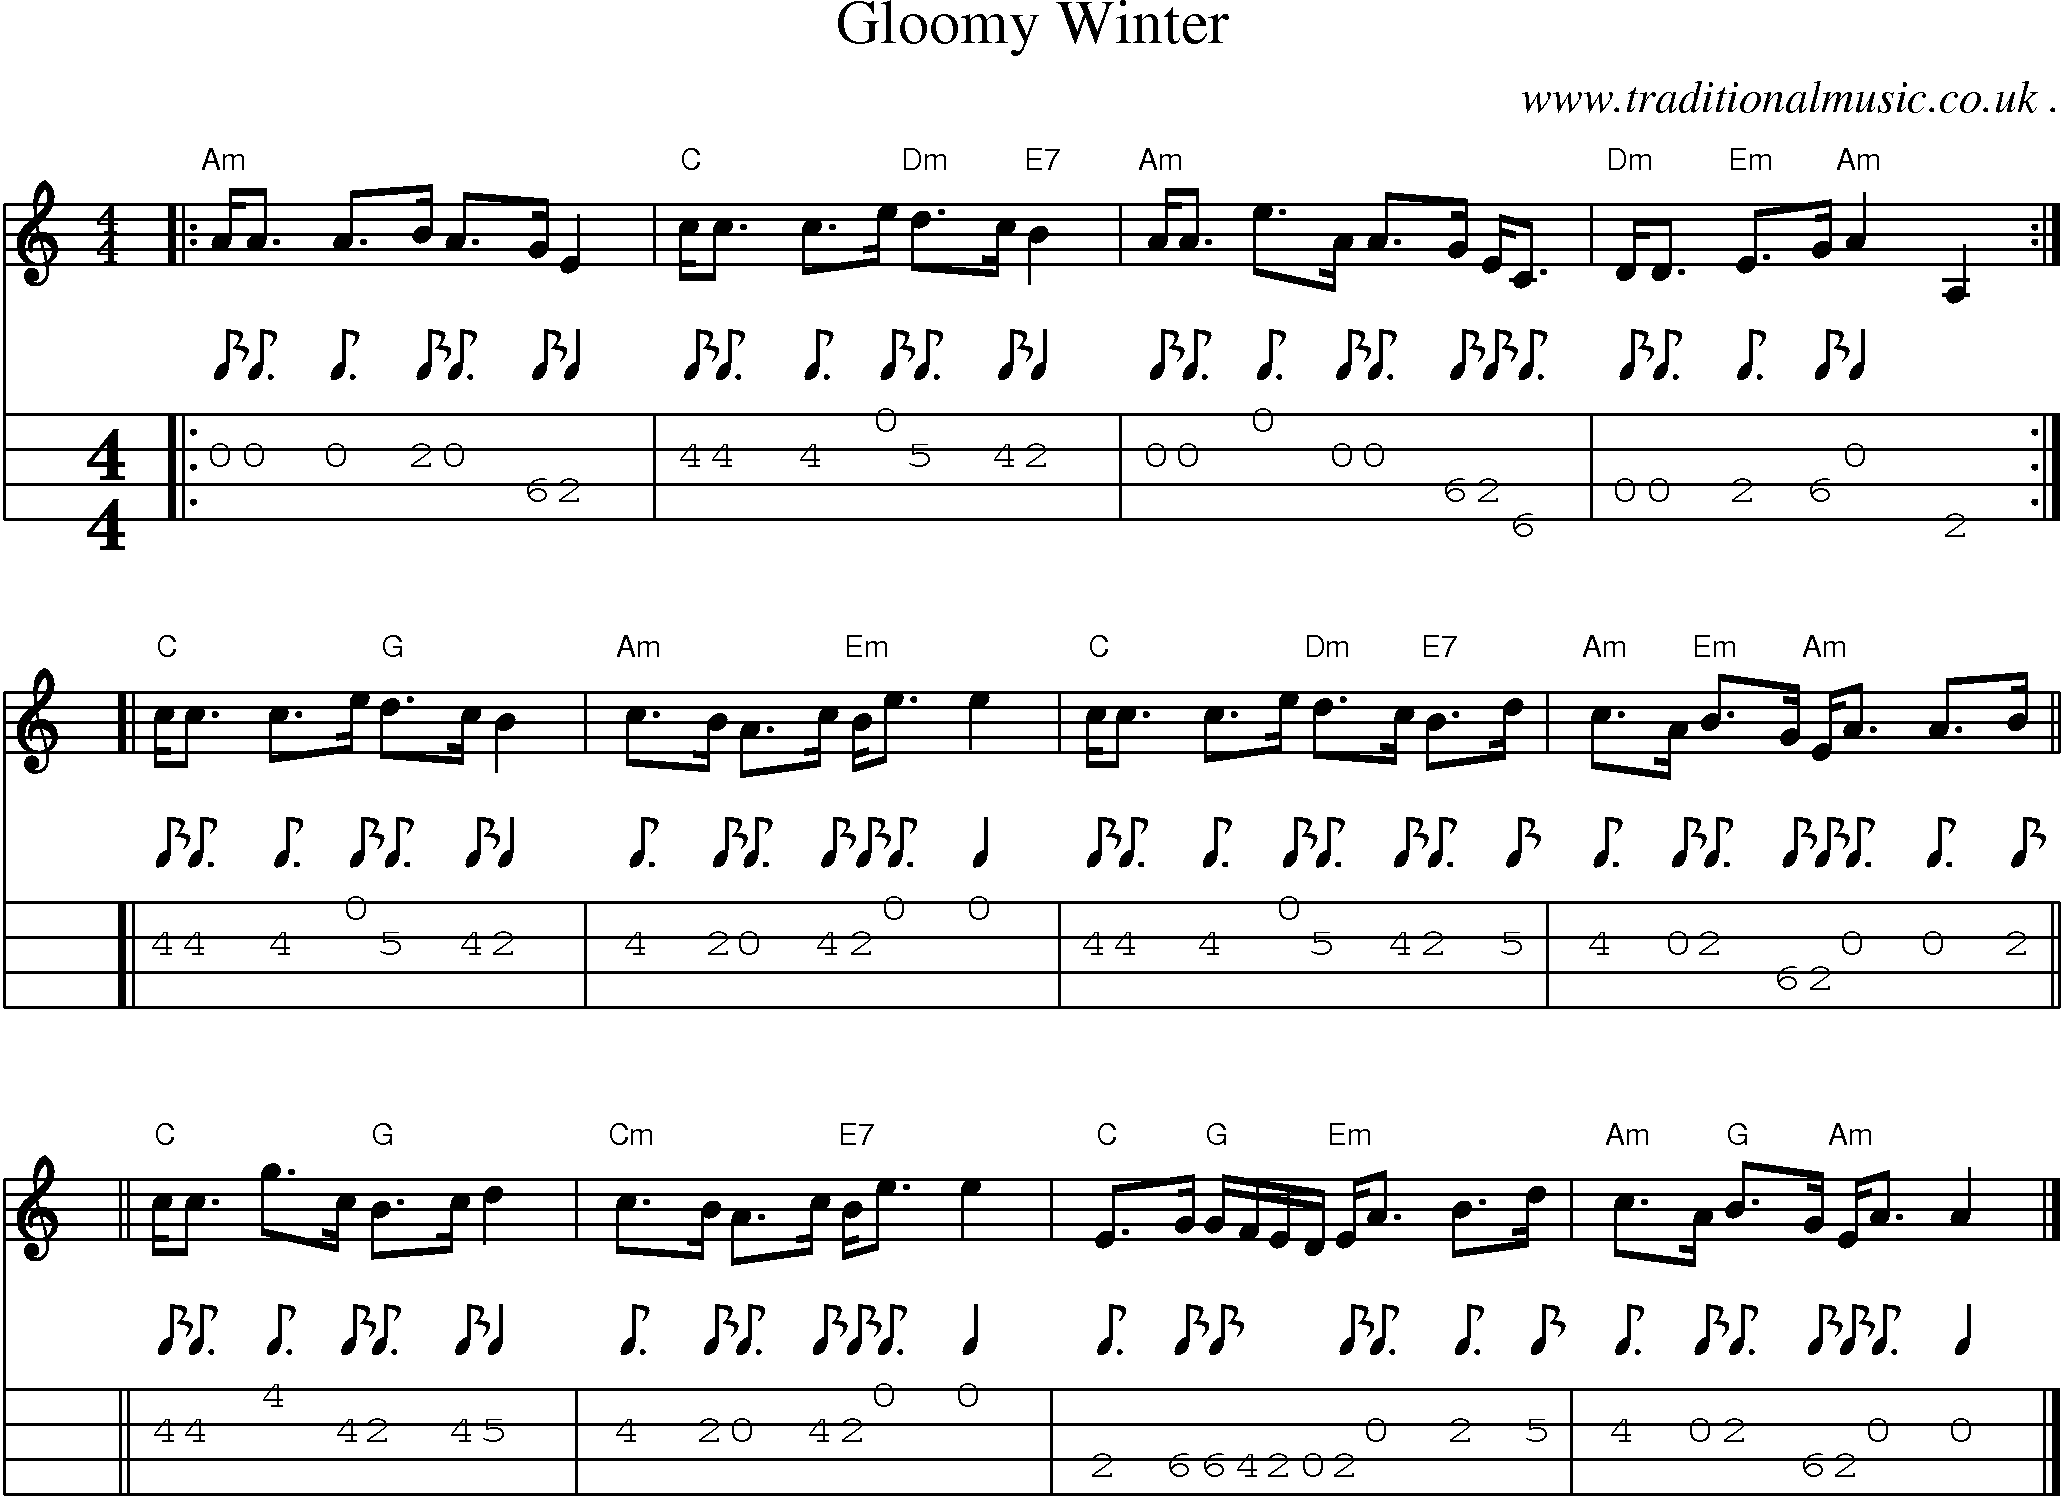 Scottish Tune, Sheetmusic, Midi, Mp3, Mandolin Tab and PDF for: Gloomy Winter